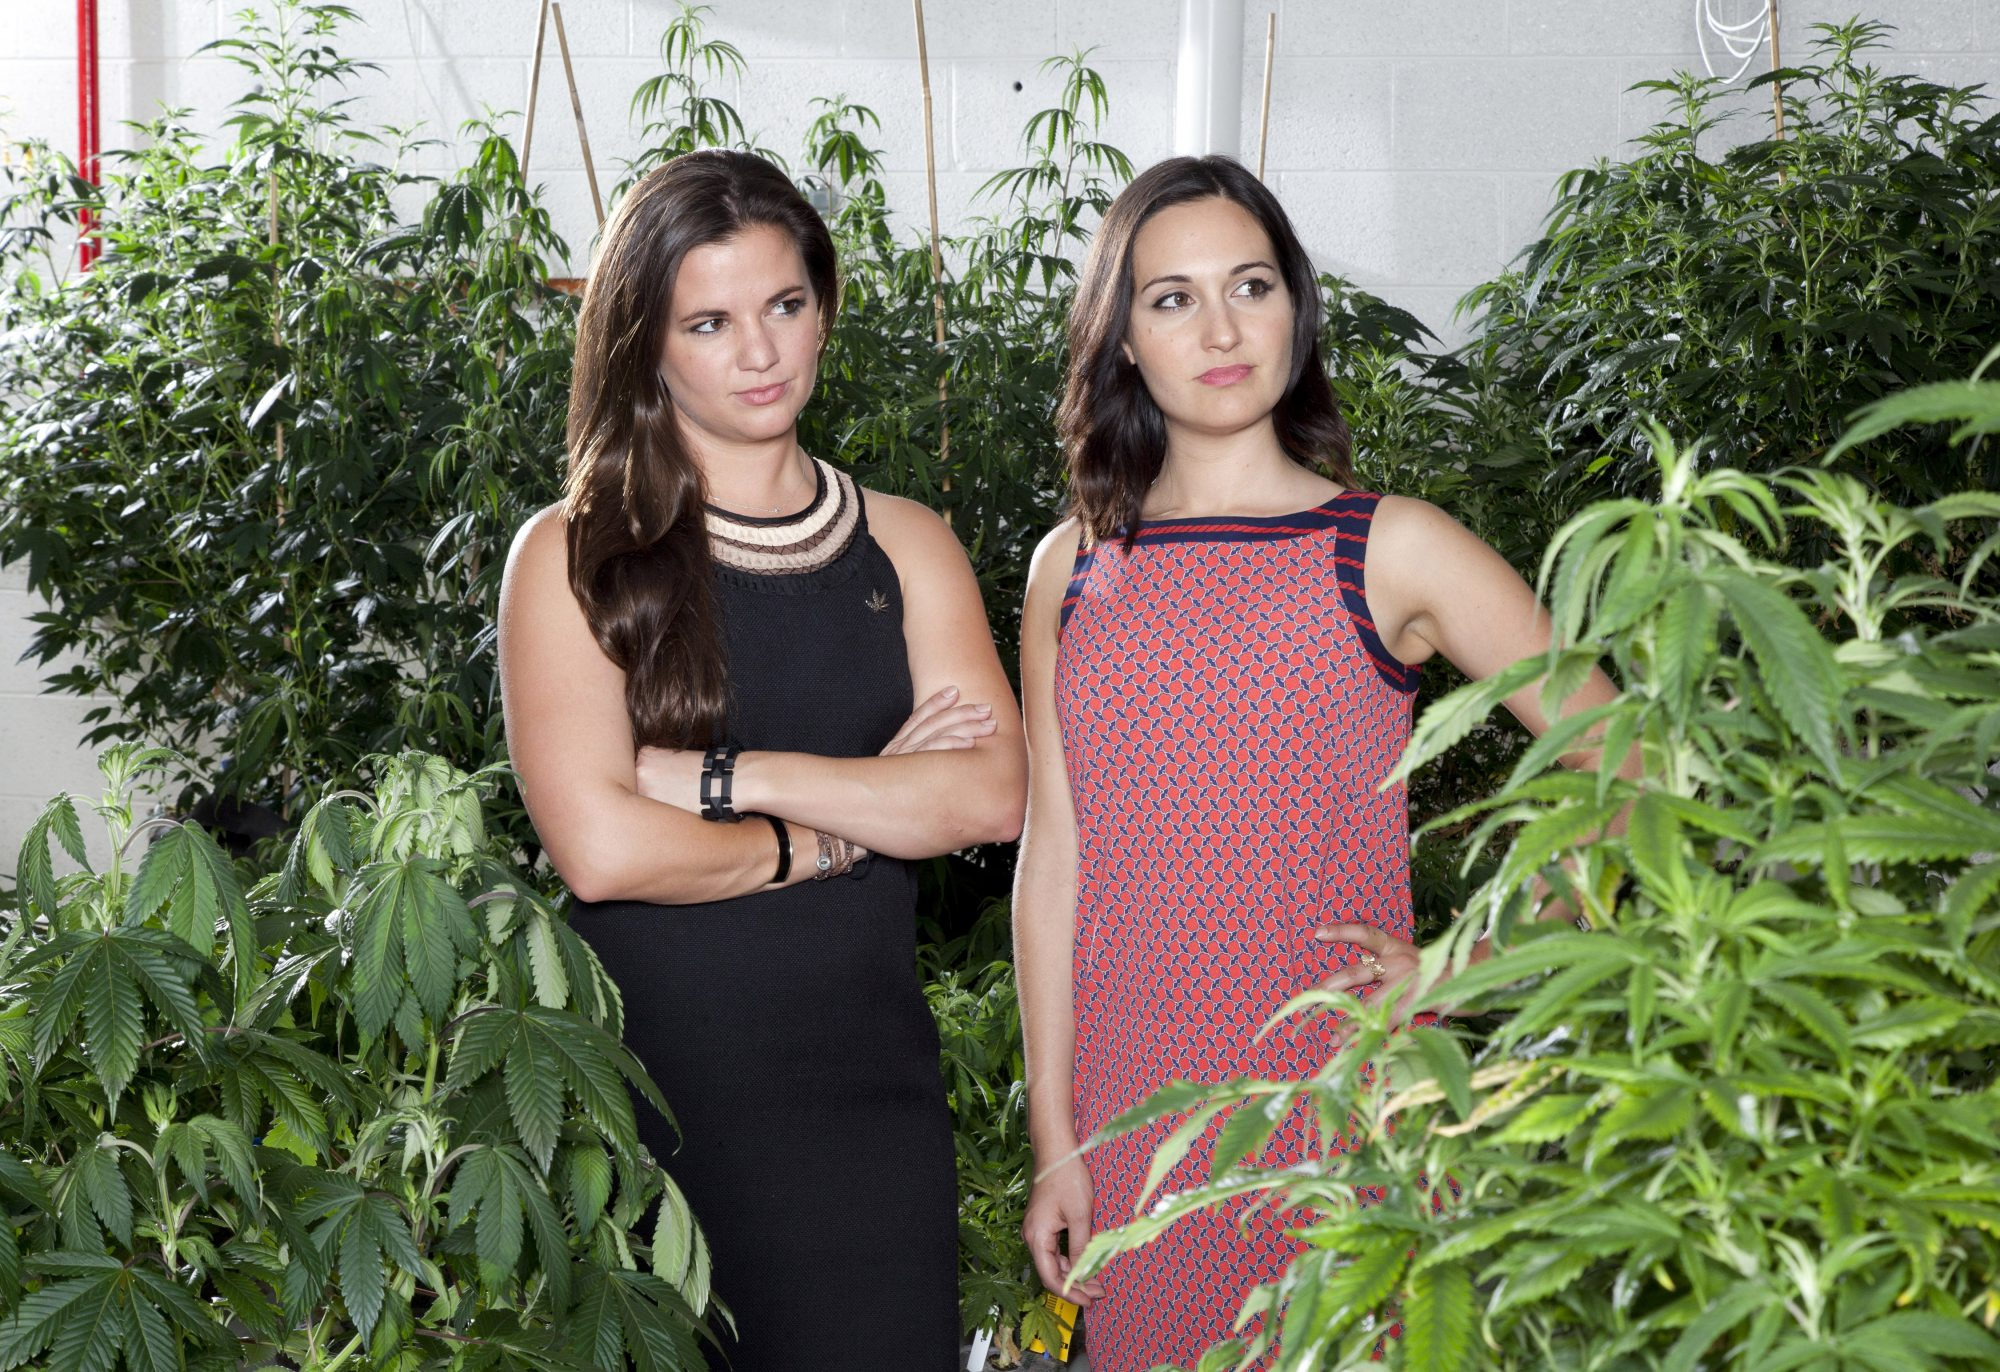 "Olivia Mannix, left, and Jennifer DeFalco, co-founders of the start-up Cannabrand, at a marijuana grow house in Denver, Sept. 17, 2014. Since Colorado legalized recreational marijuana sales, the state has seen so-called ""gangapreneurs"" rush in, many aiming to help pot shed the stoner stigma. ""We want to show the world that normal, professional, successful people consume cannabis,"" says Mannix. (Morgan Rachel Levy/The New York Times) -- PHOTO MOVED IN ADVANCE AND NOT FOR USE - ONLINE OR IN PRINT - BEFORE OCT. 5, 2014."